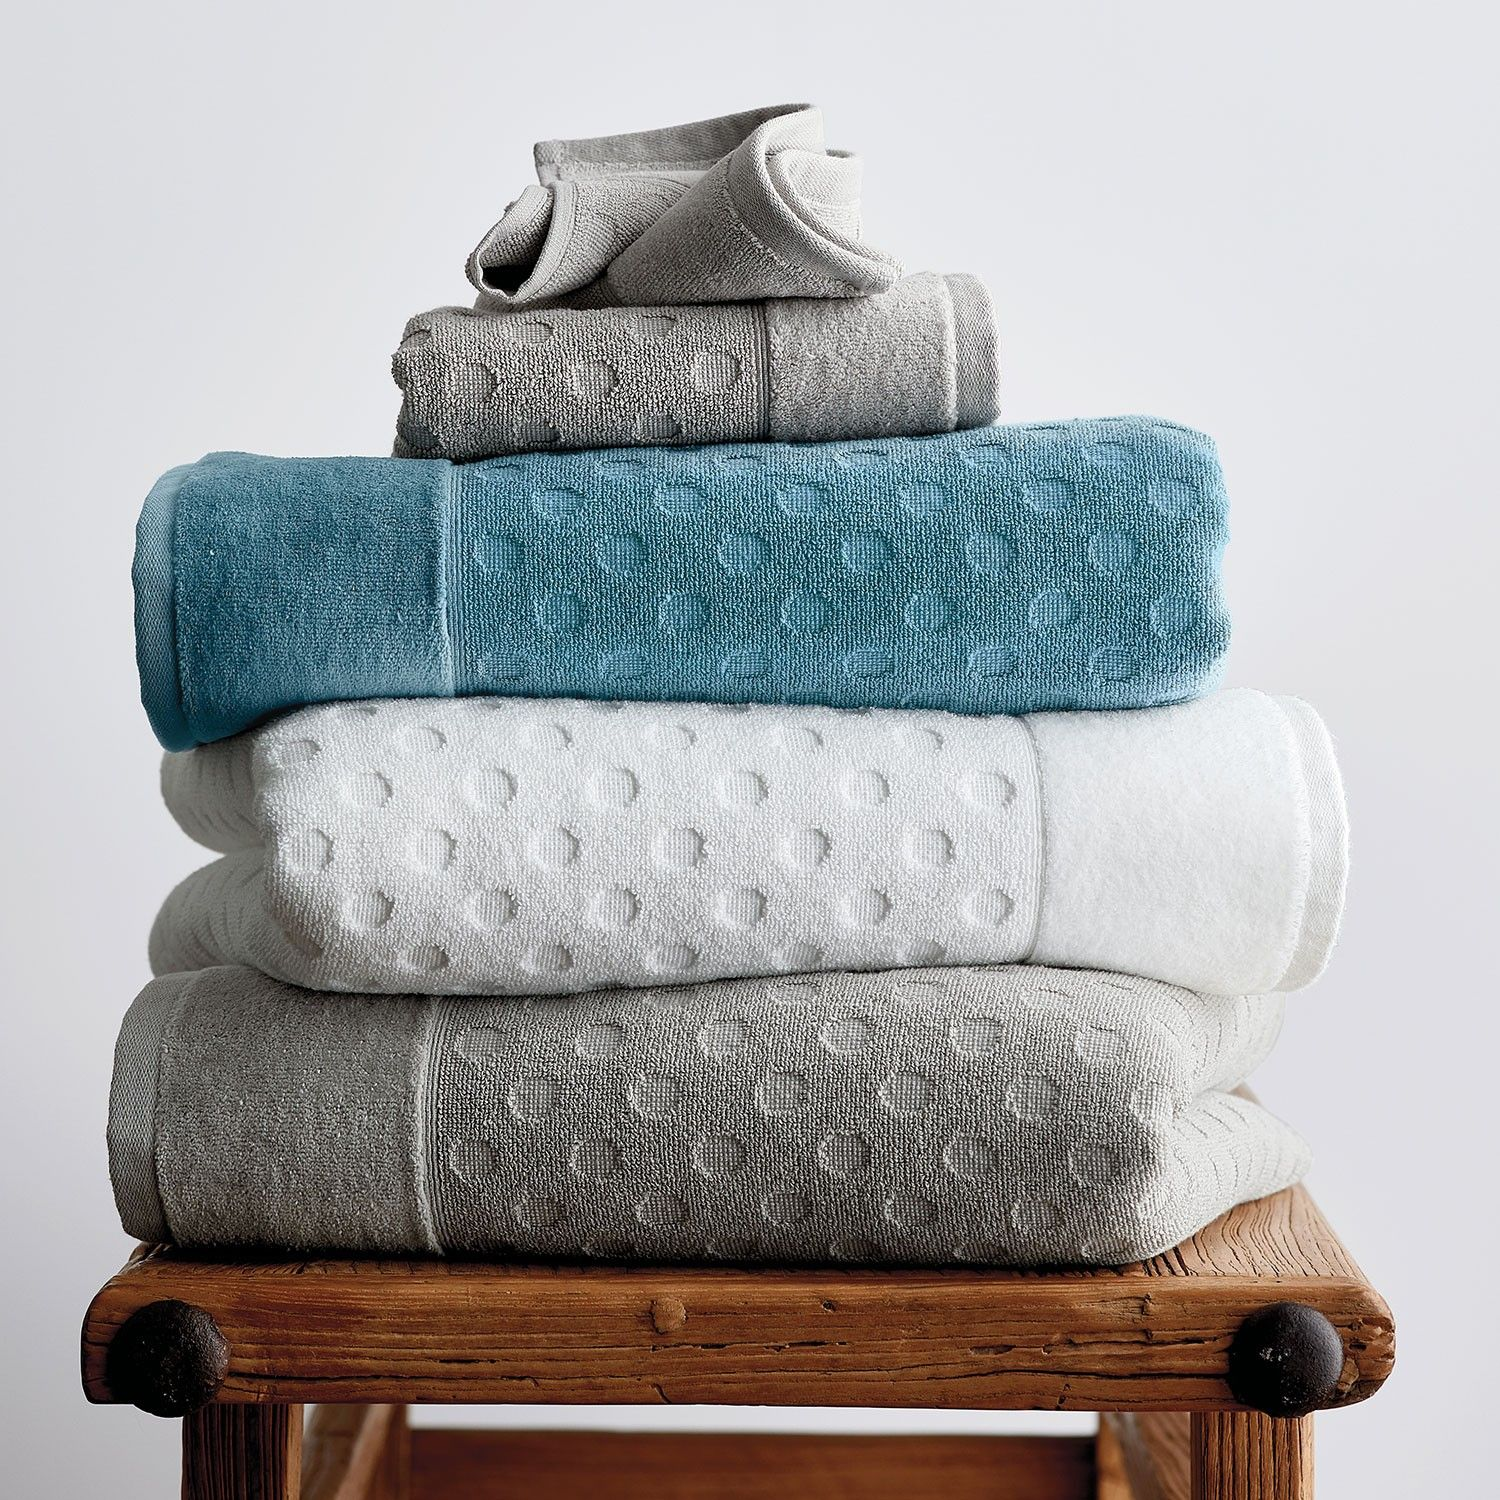 Dot Supima Cotton Luxury Bath Towels The Company Store In 2020